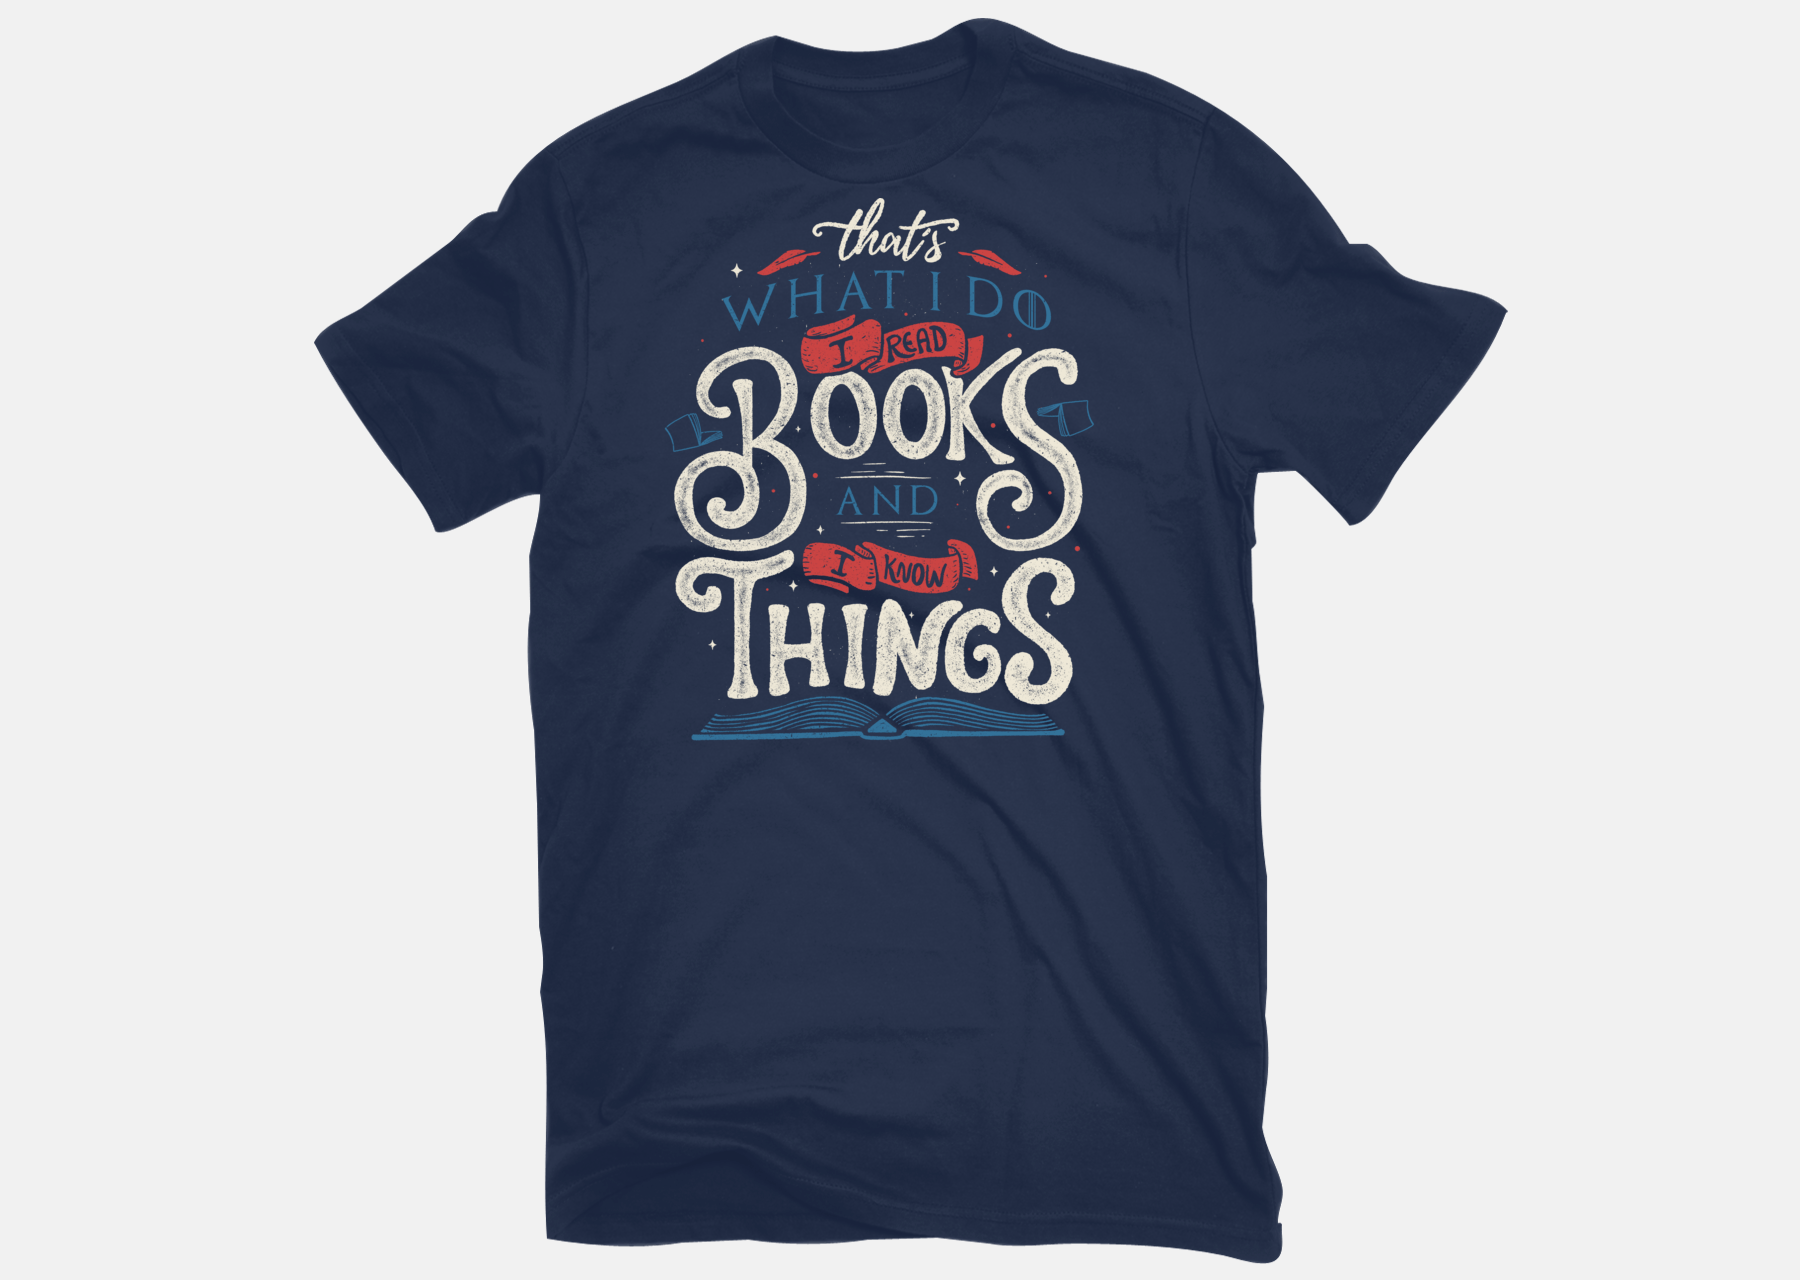 9f073ddeed3 I Read Books and I Know Things